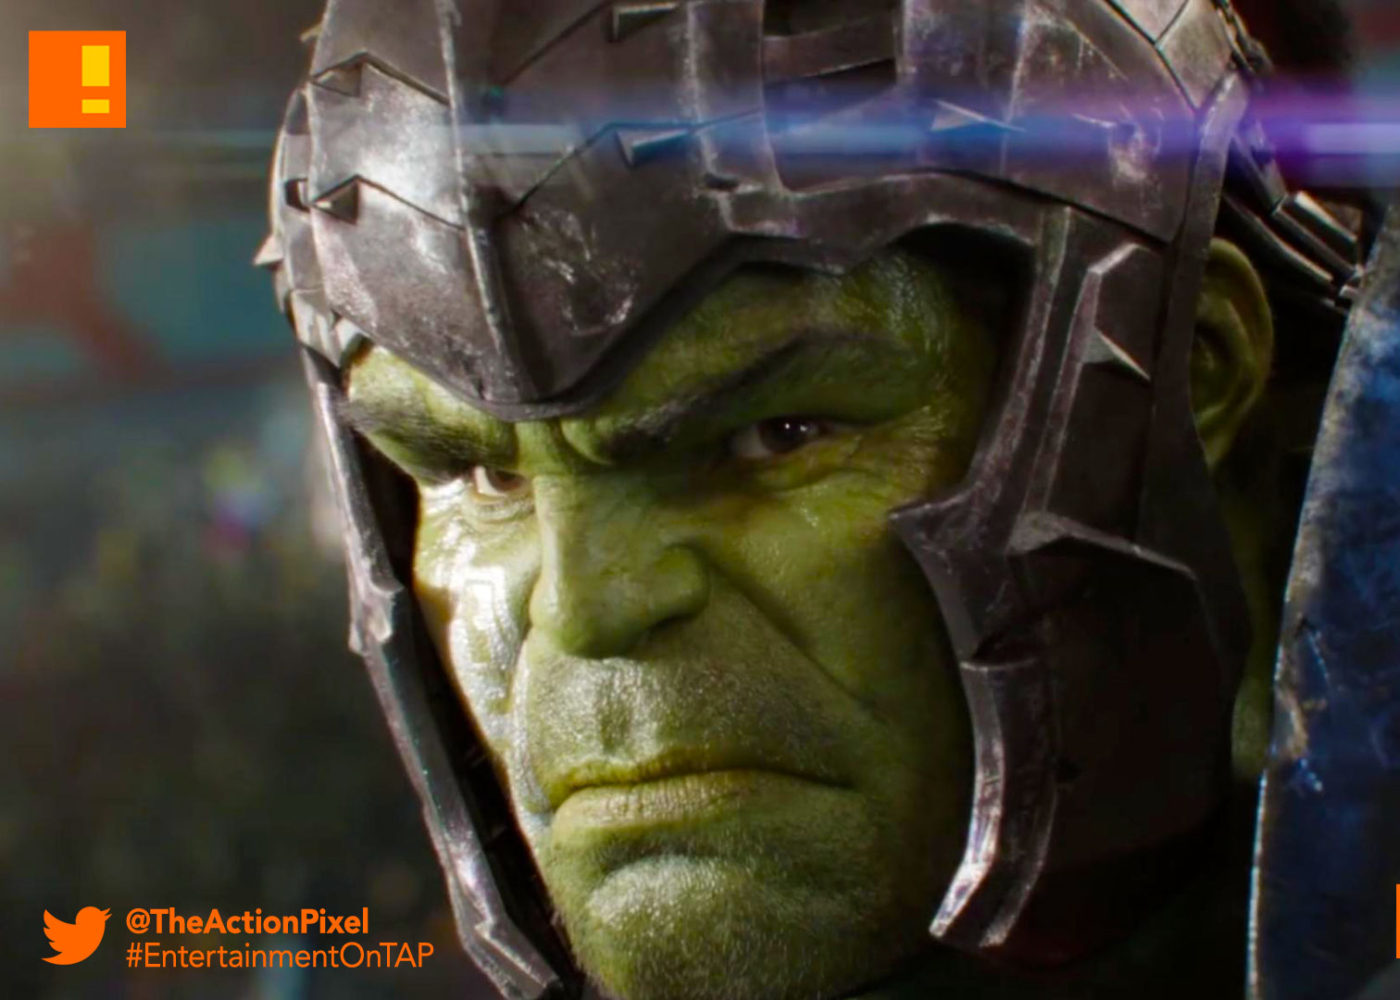 thor ragnarok, hulk, entertainment on tap, the action pixel, marvel comics, mark ruffalo